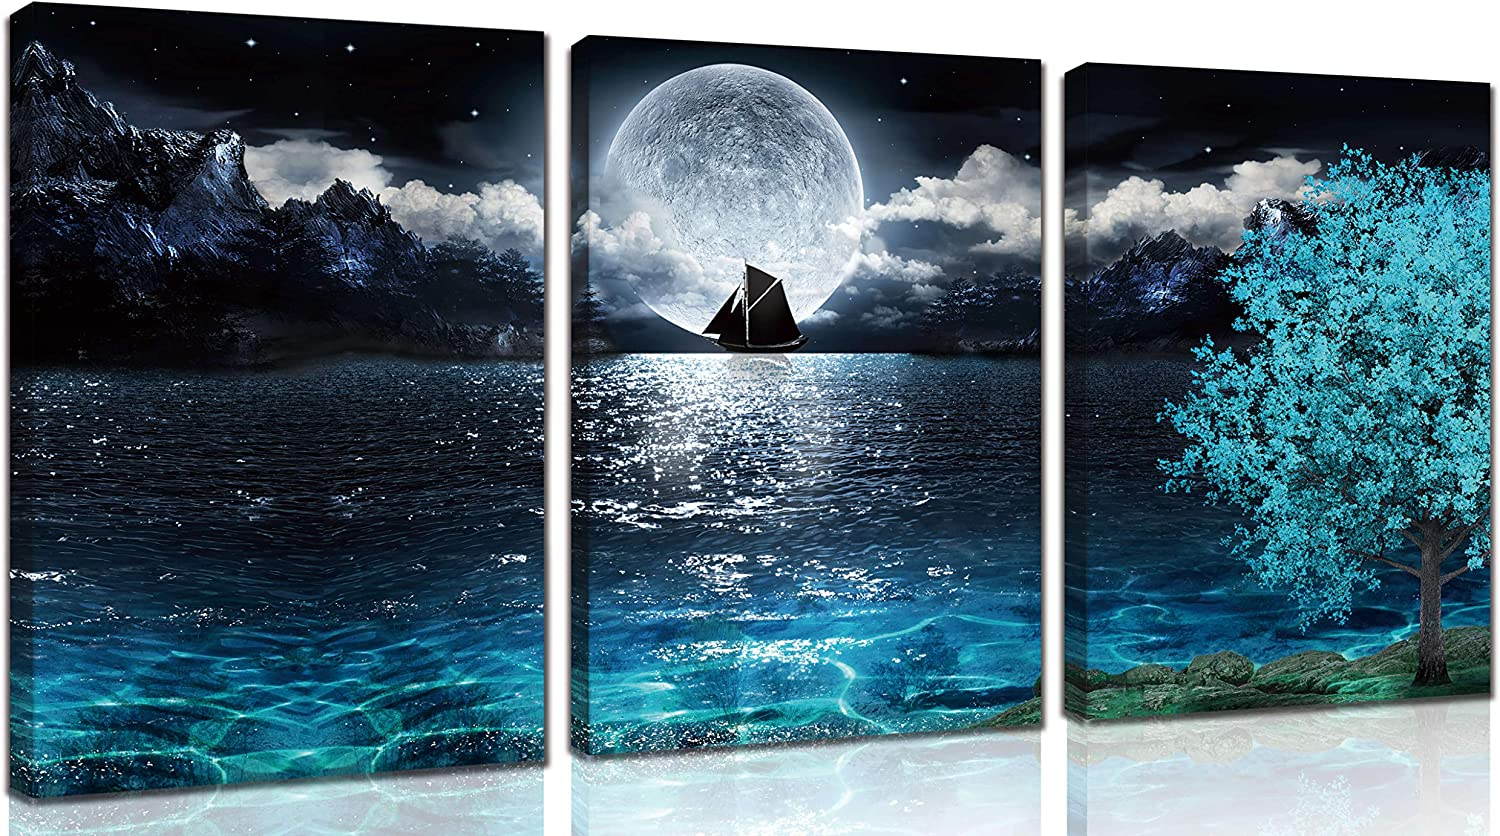 aburaeart Moon Wall-Art - Teal Ocean Modern Decor Wall Decor for Living Room - Wall Art for Bedroom On Canvas Framed Size 12x16 Inches x3 Pieces